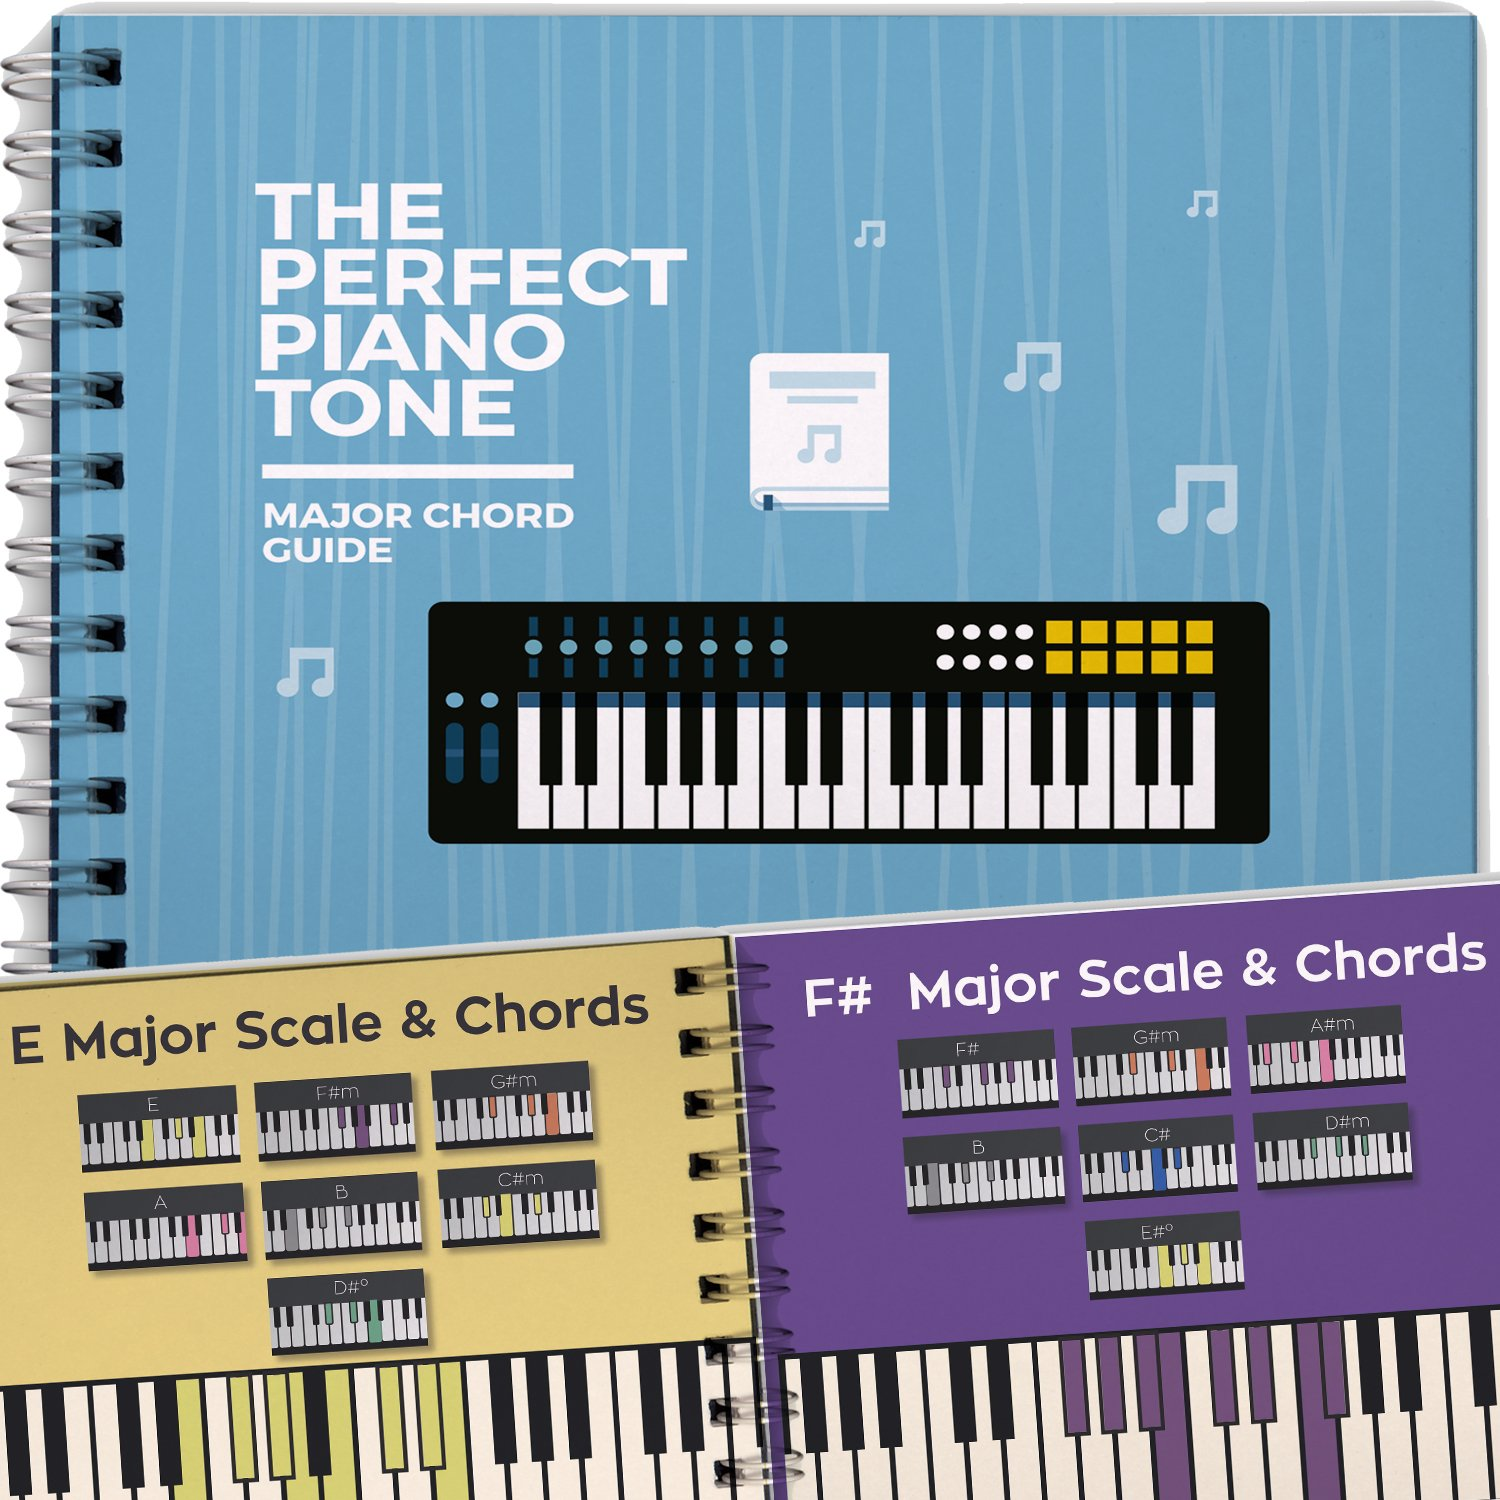 The perfect piano tone music chords guide for piano major chords the perfect piano tone music chords guide for piano major chords for beginners learn how to play scales for keyboard chart lessons progressions and hexwebz Choice Image